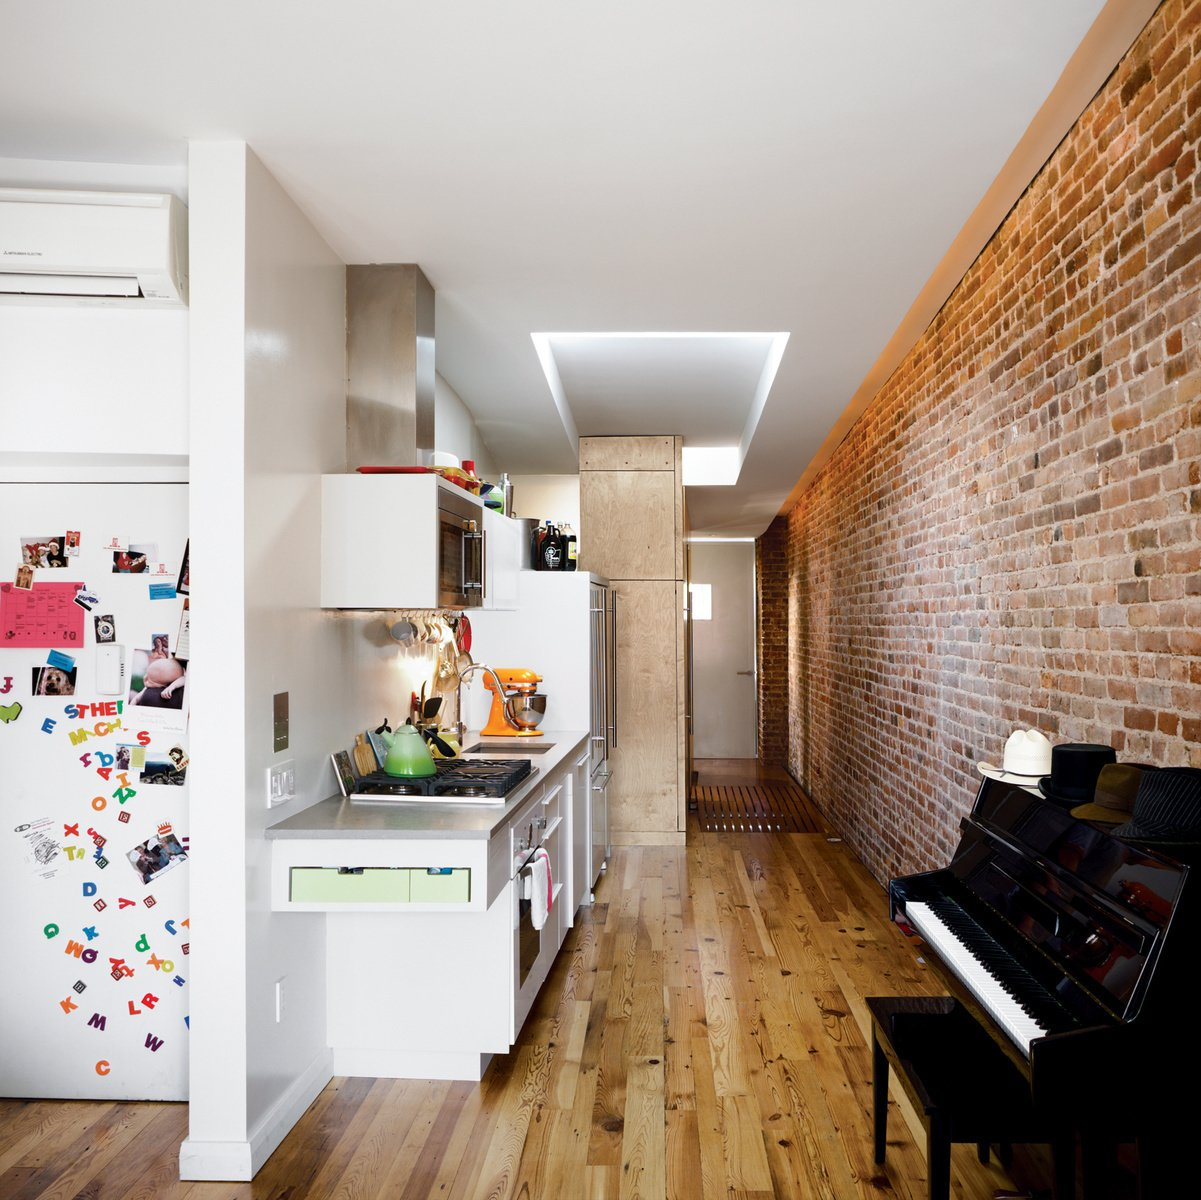 3 Bedroom Apartment Nyc: Photo 2 Of 11 In These 10 Tiny Apartments In New York City